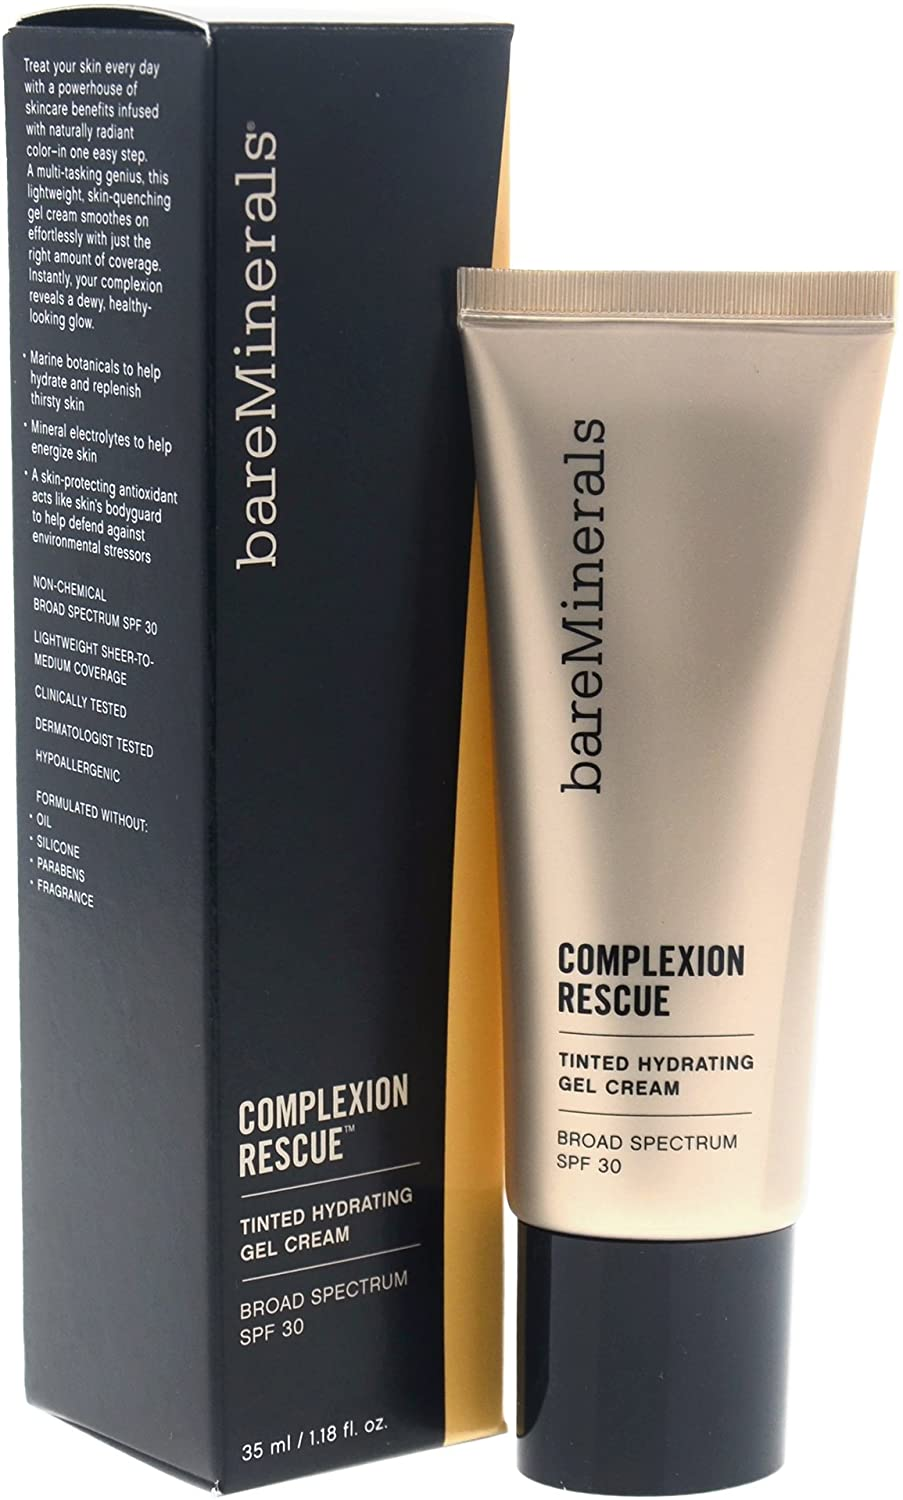 Tinted Hydrating Gel from bareMinerals